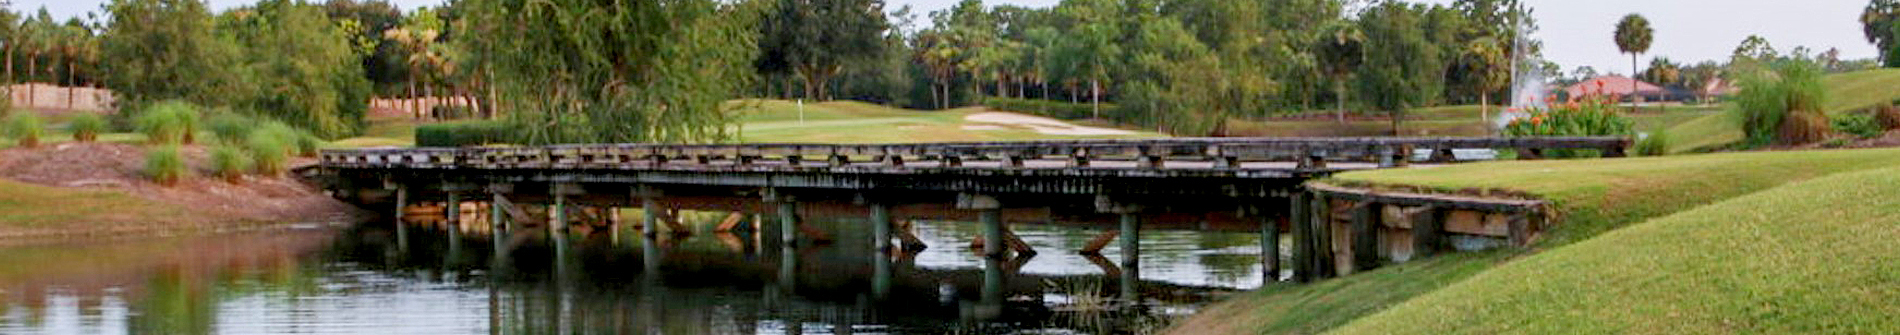 Overview of golf course named Preserve/Savannah at Strand, The